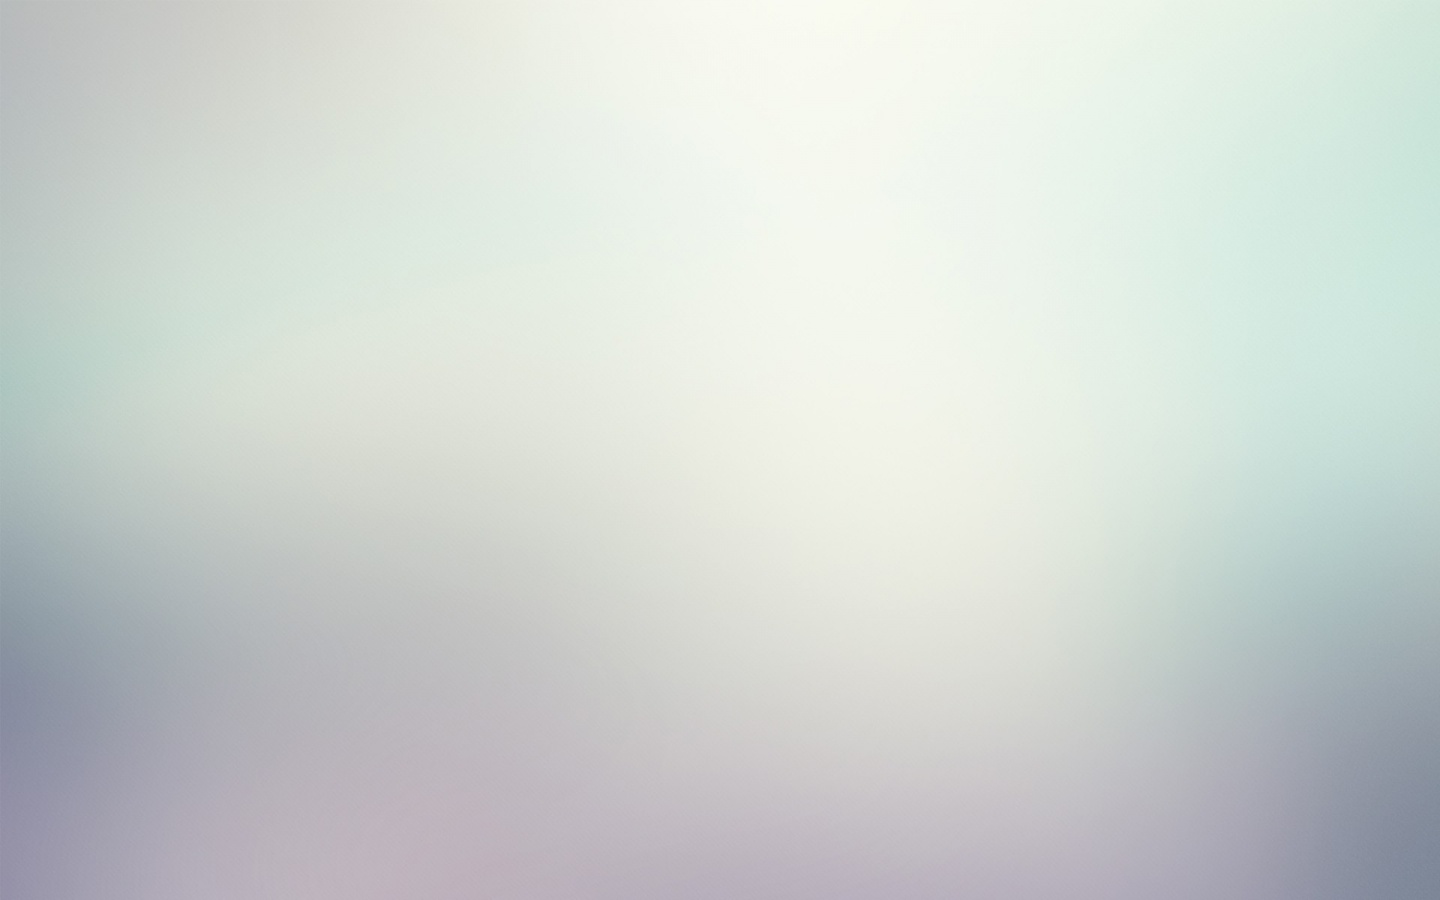 1440x900 Minimal Gray to White Gradient desktop PC and Mac